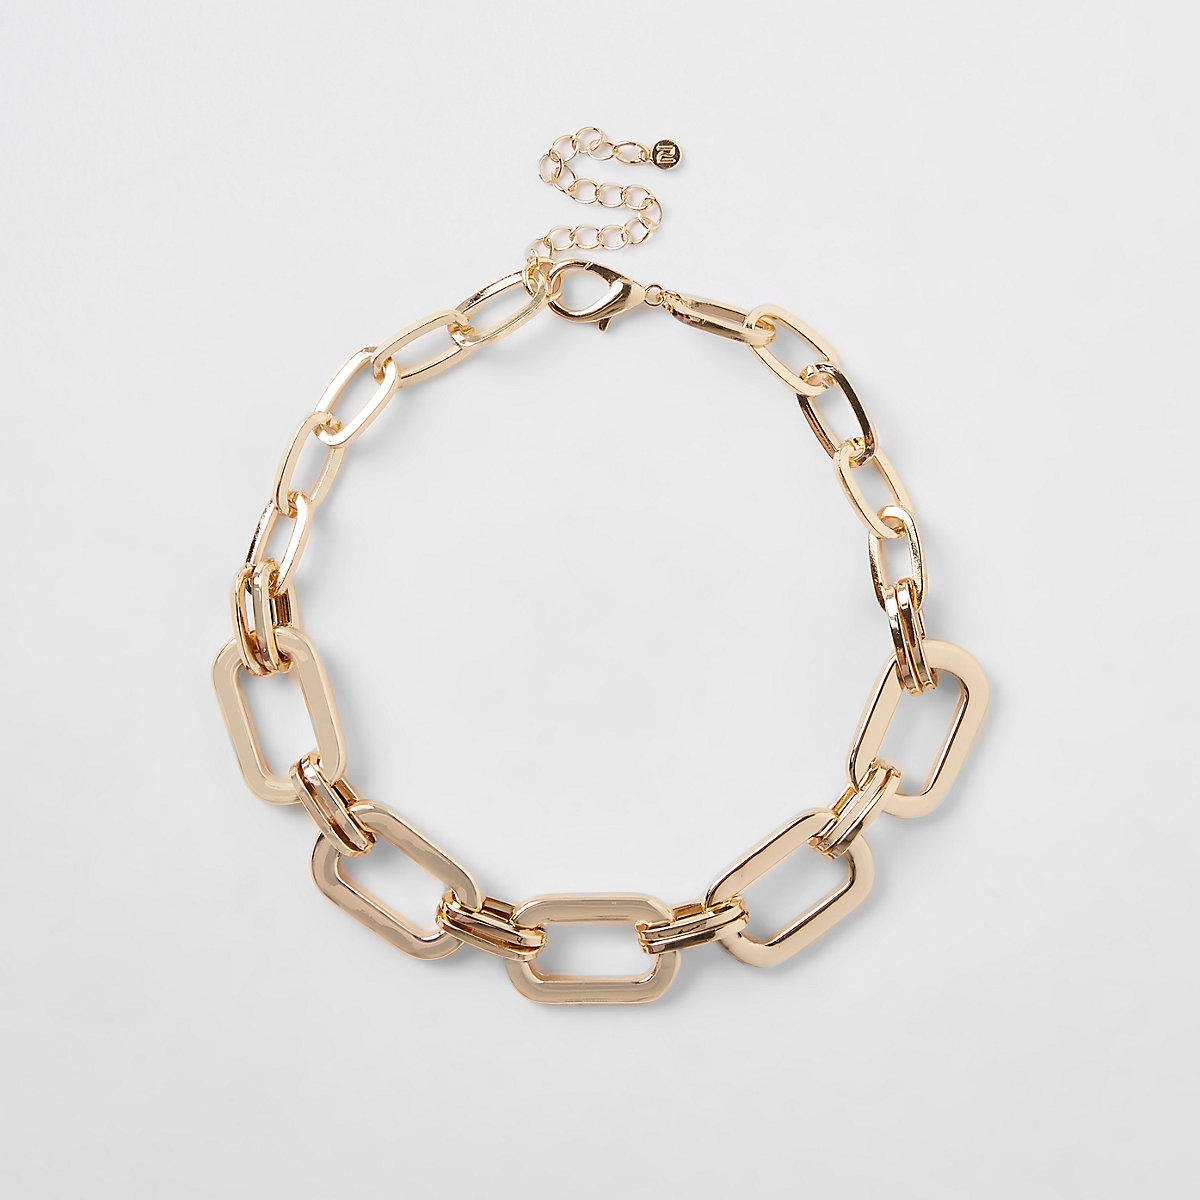 Gold color rectangular chain necklace